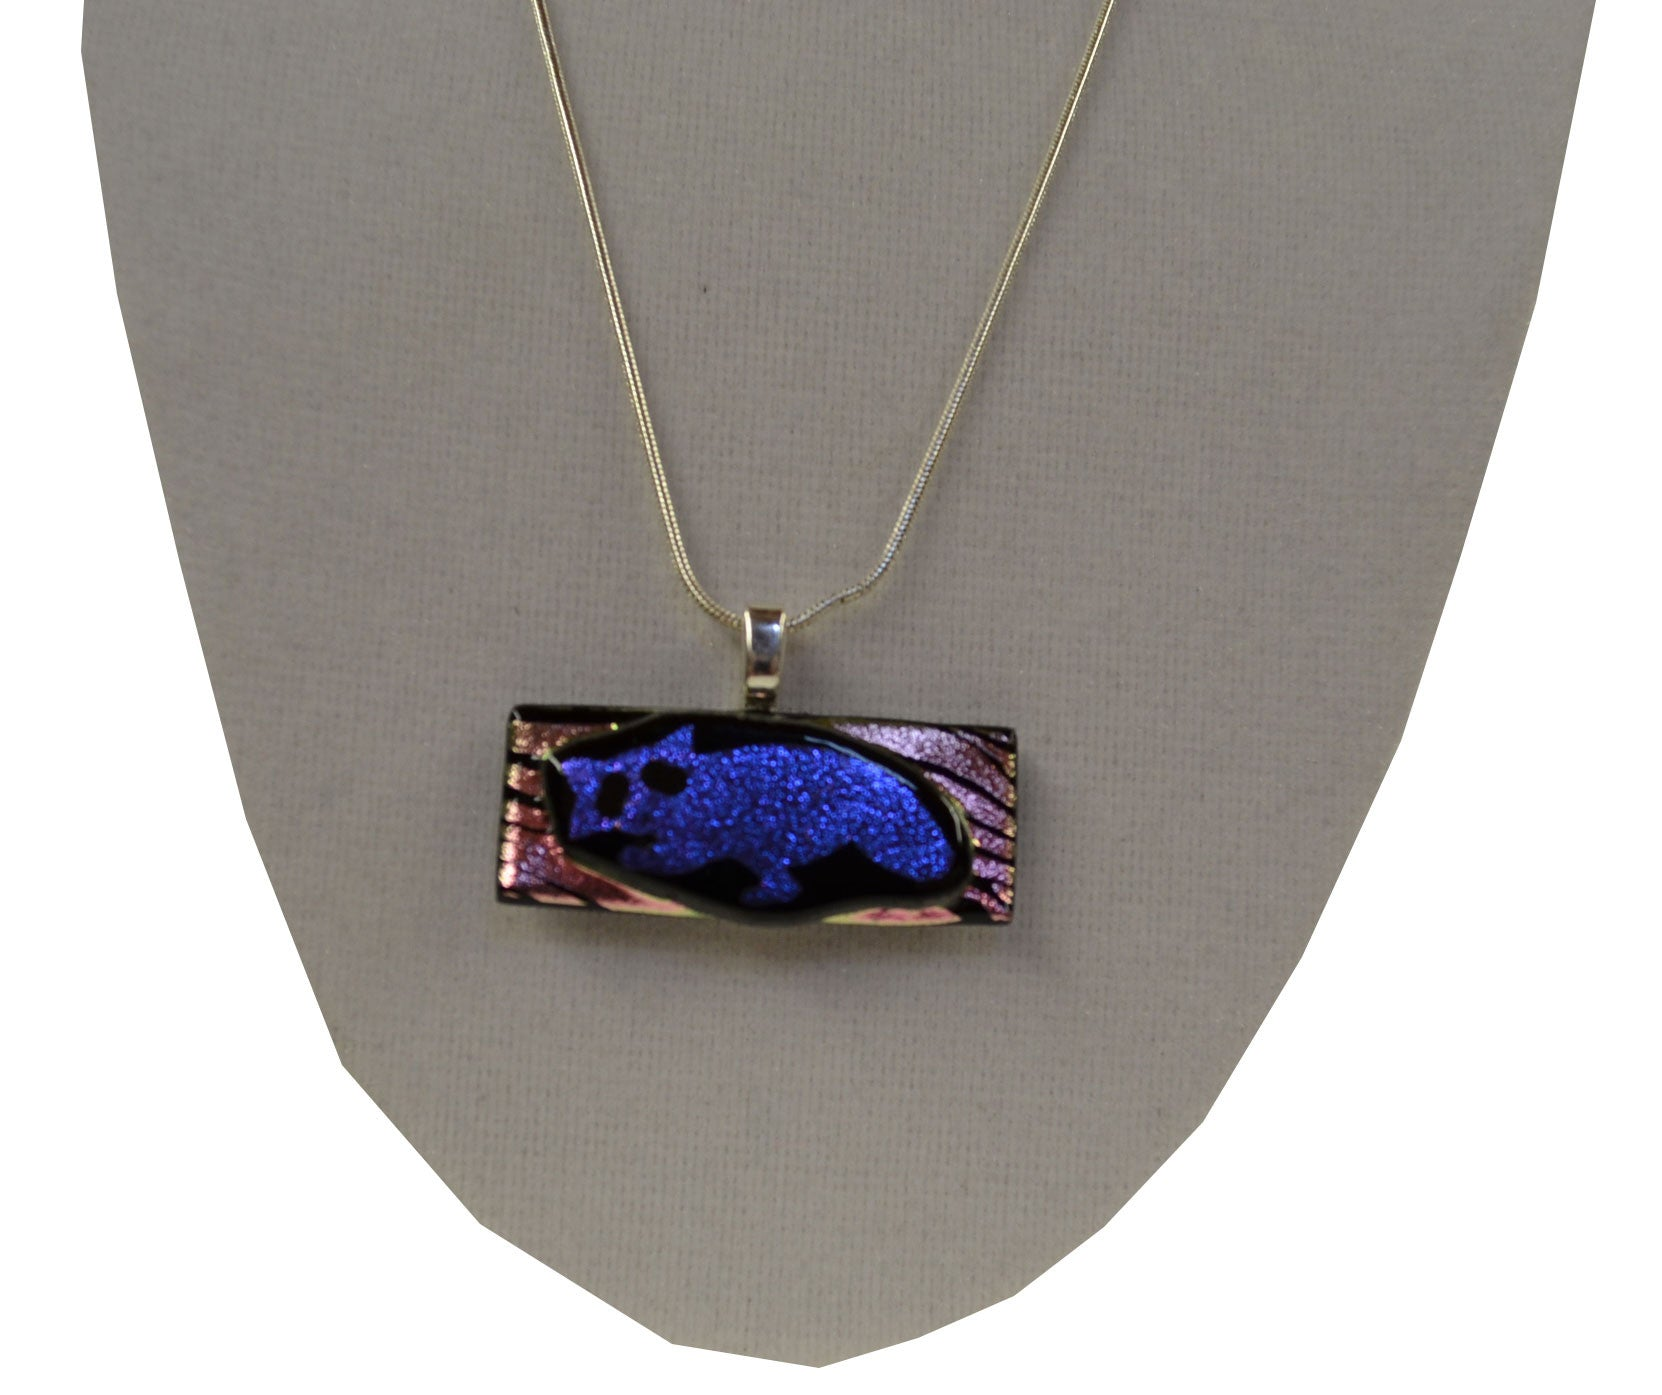 Zebra Print Raccoon Necklace - Squirrels and More